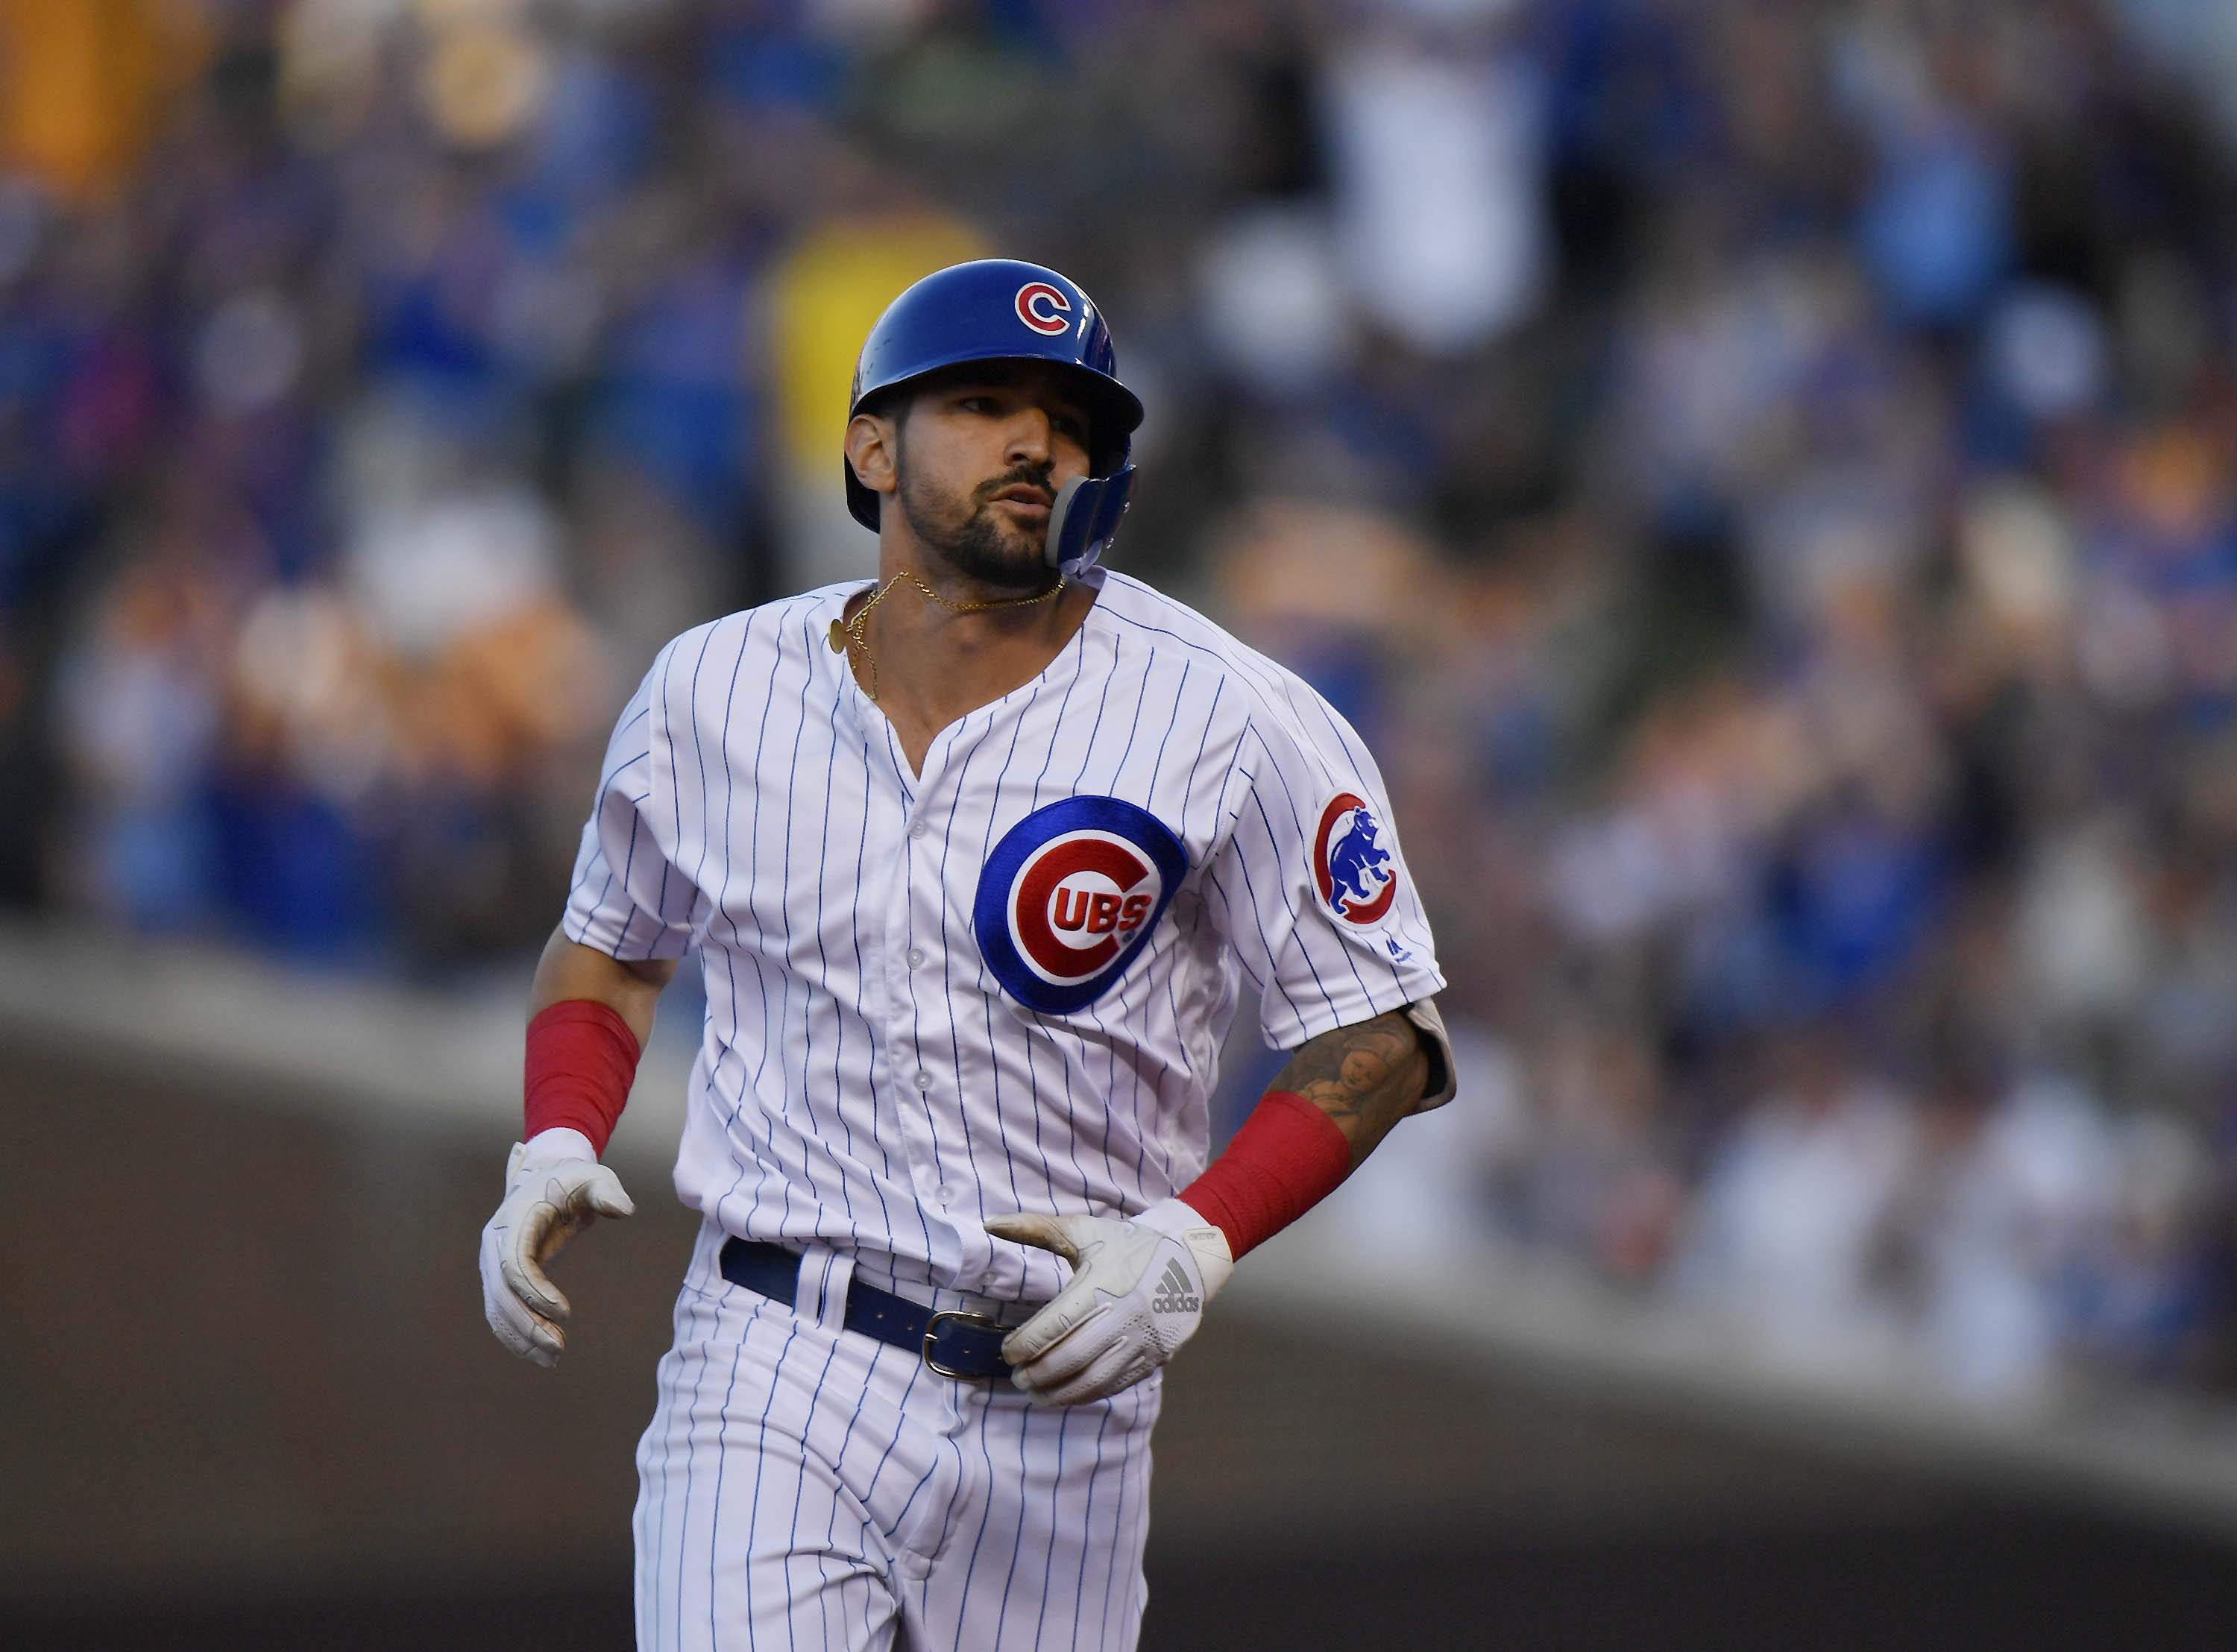 Giants sign infielder Tommy La Stella